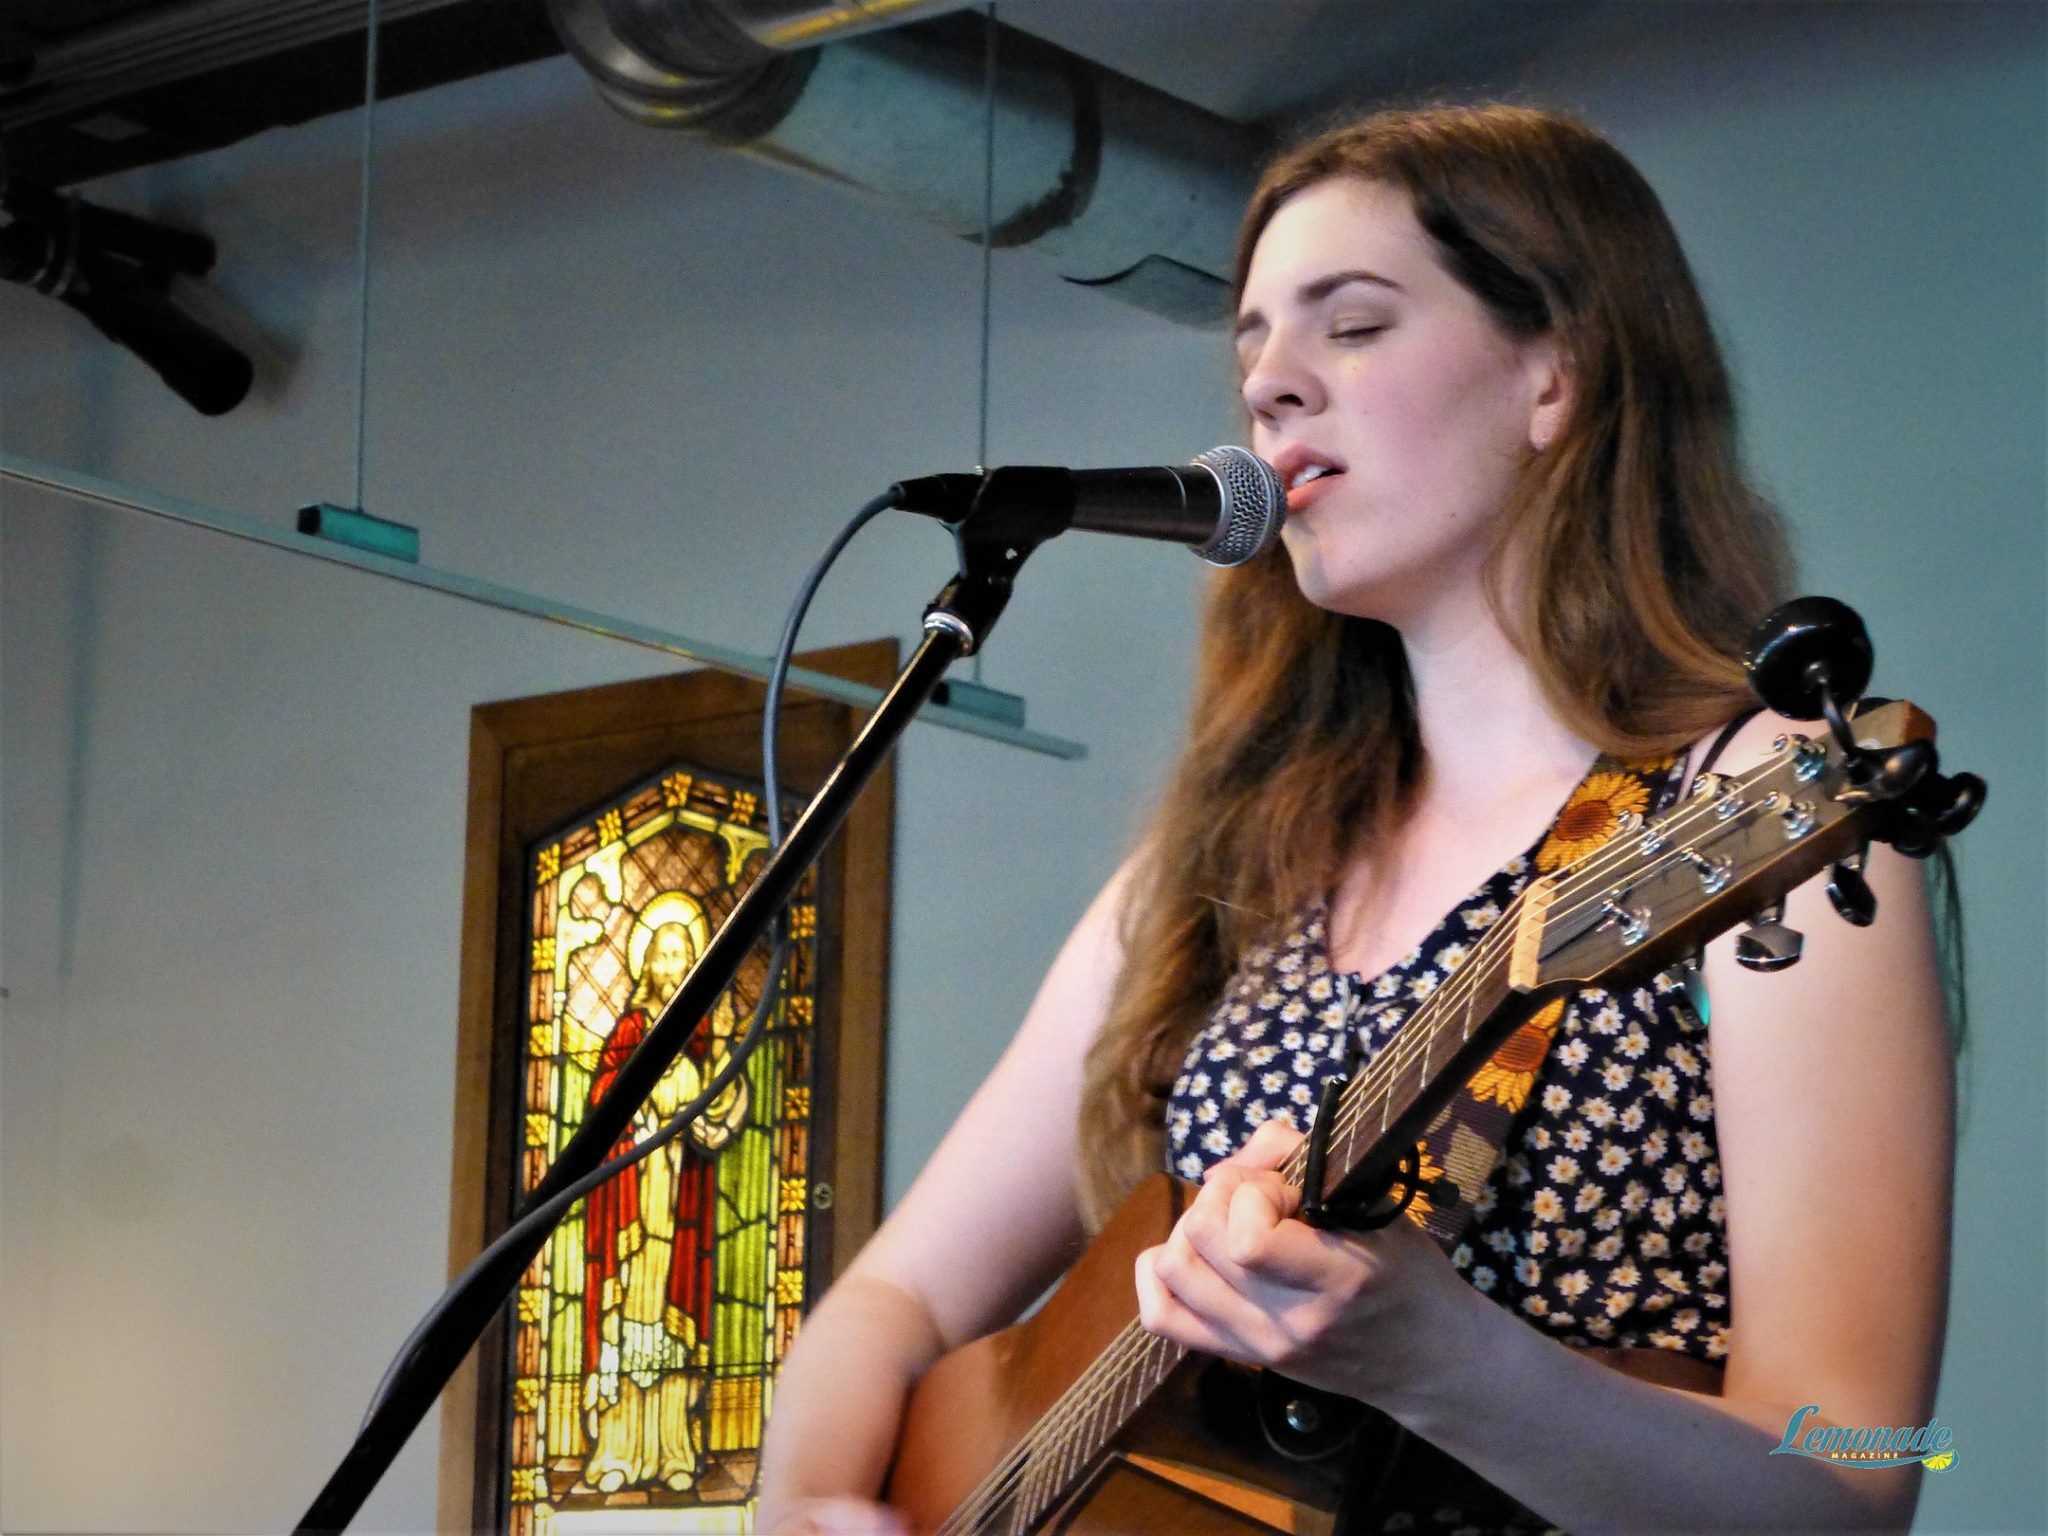 Live with the FRIENDS presents: Emily Keener